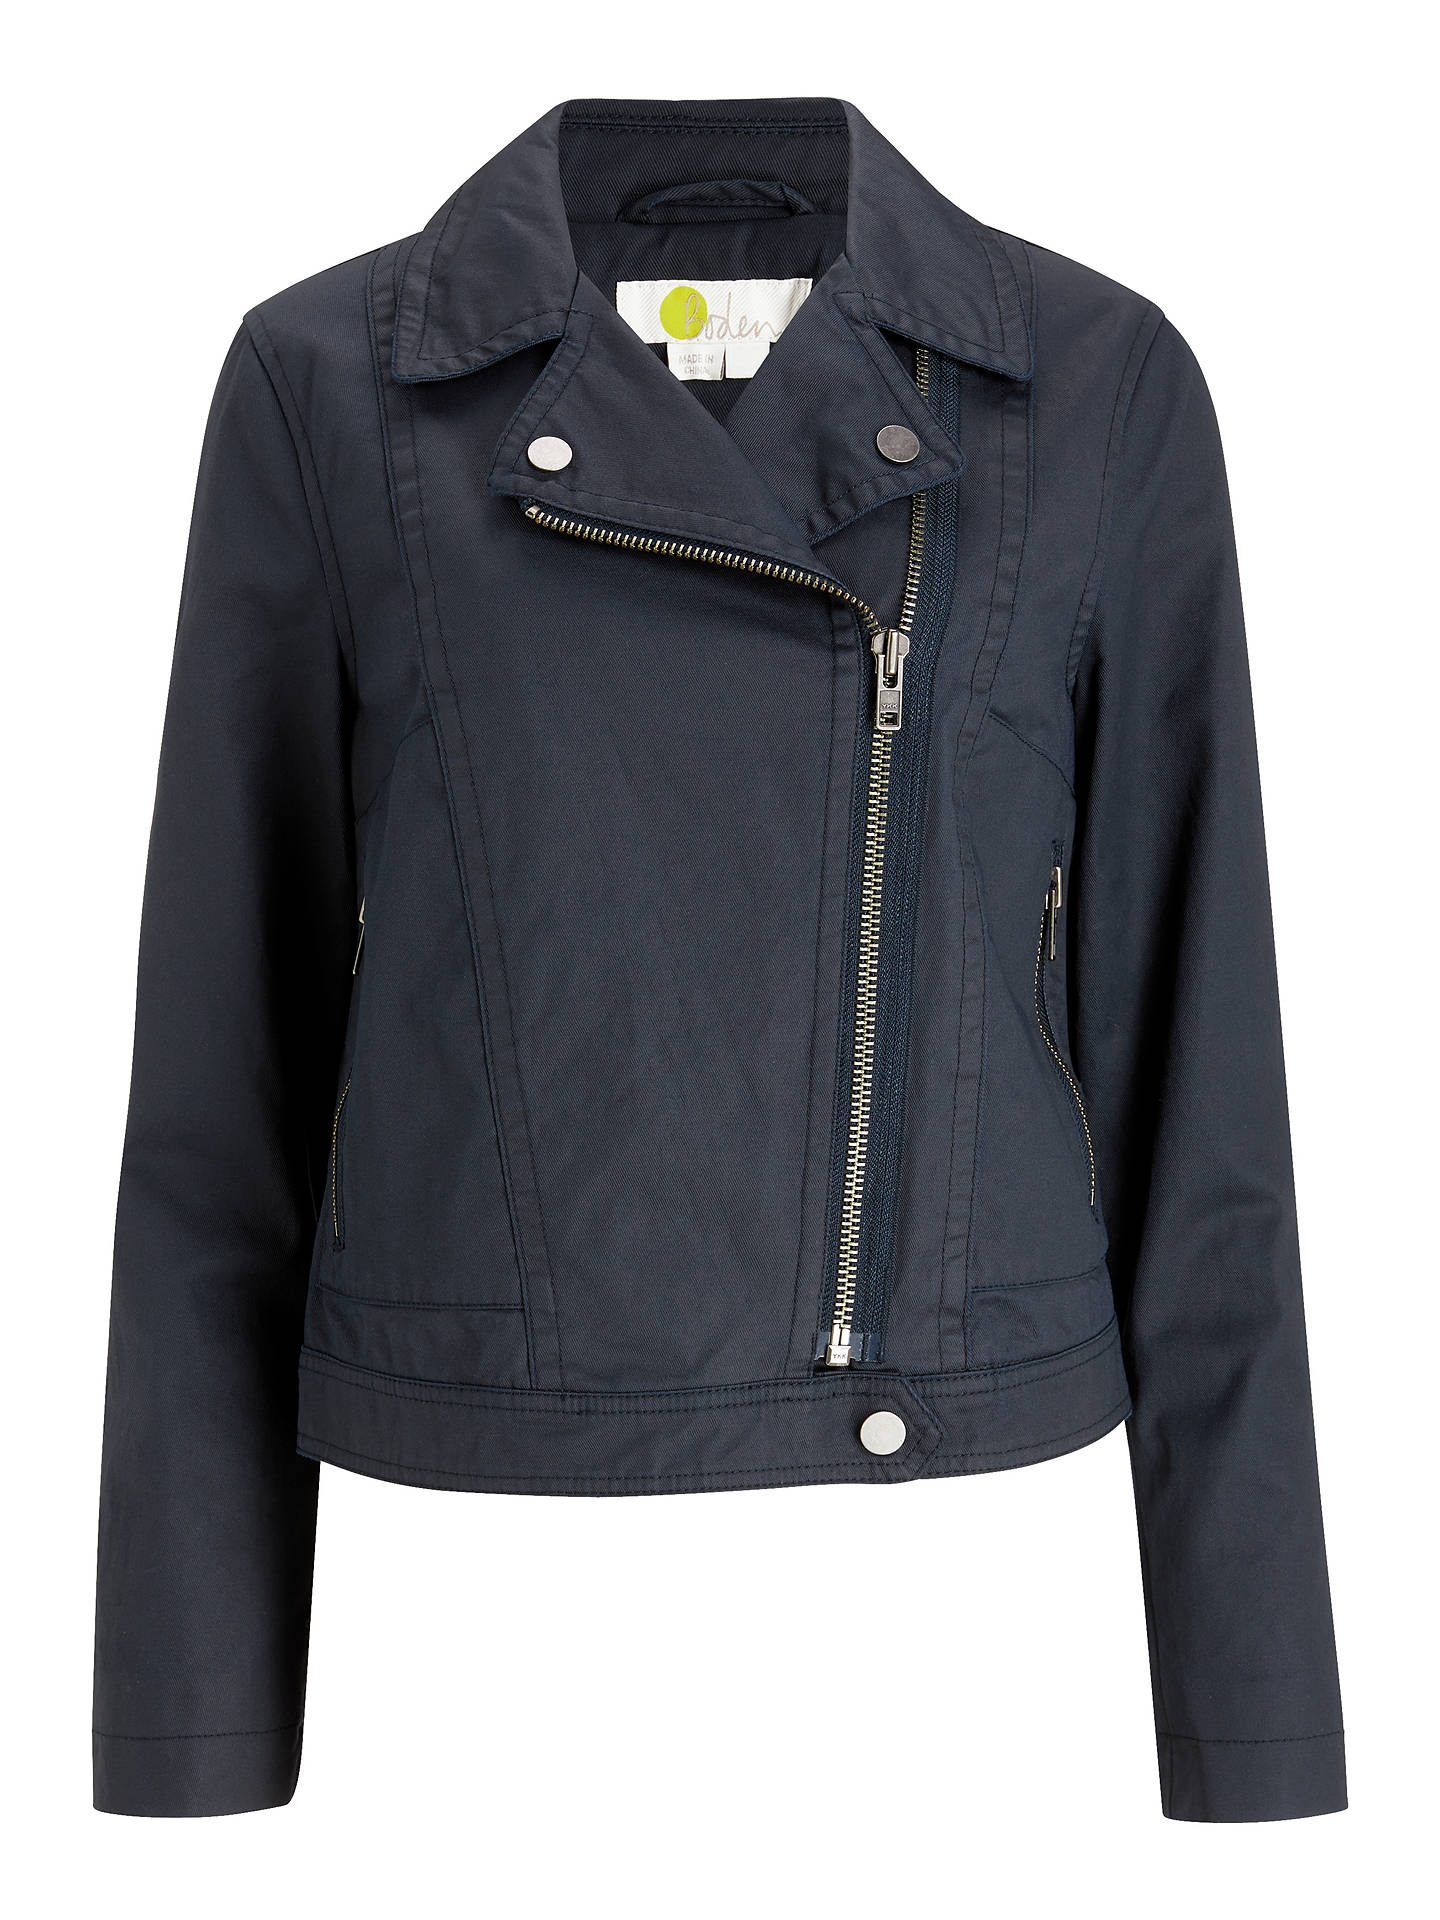 0b41090ec Boden Wren Biker Jacket, Navy at John Lewis & Partners